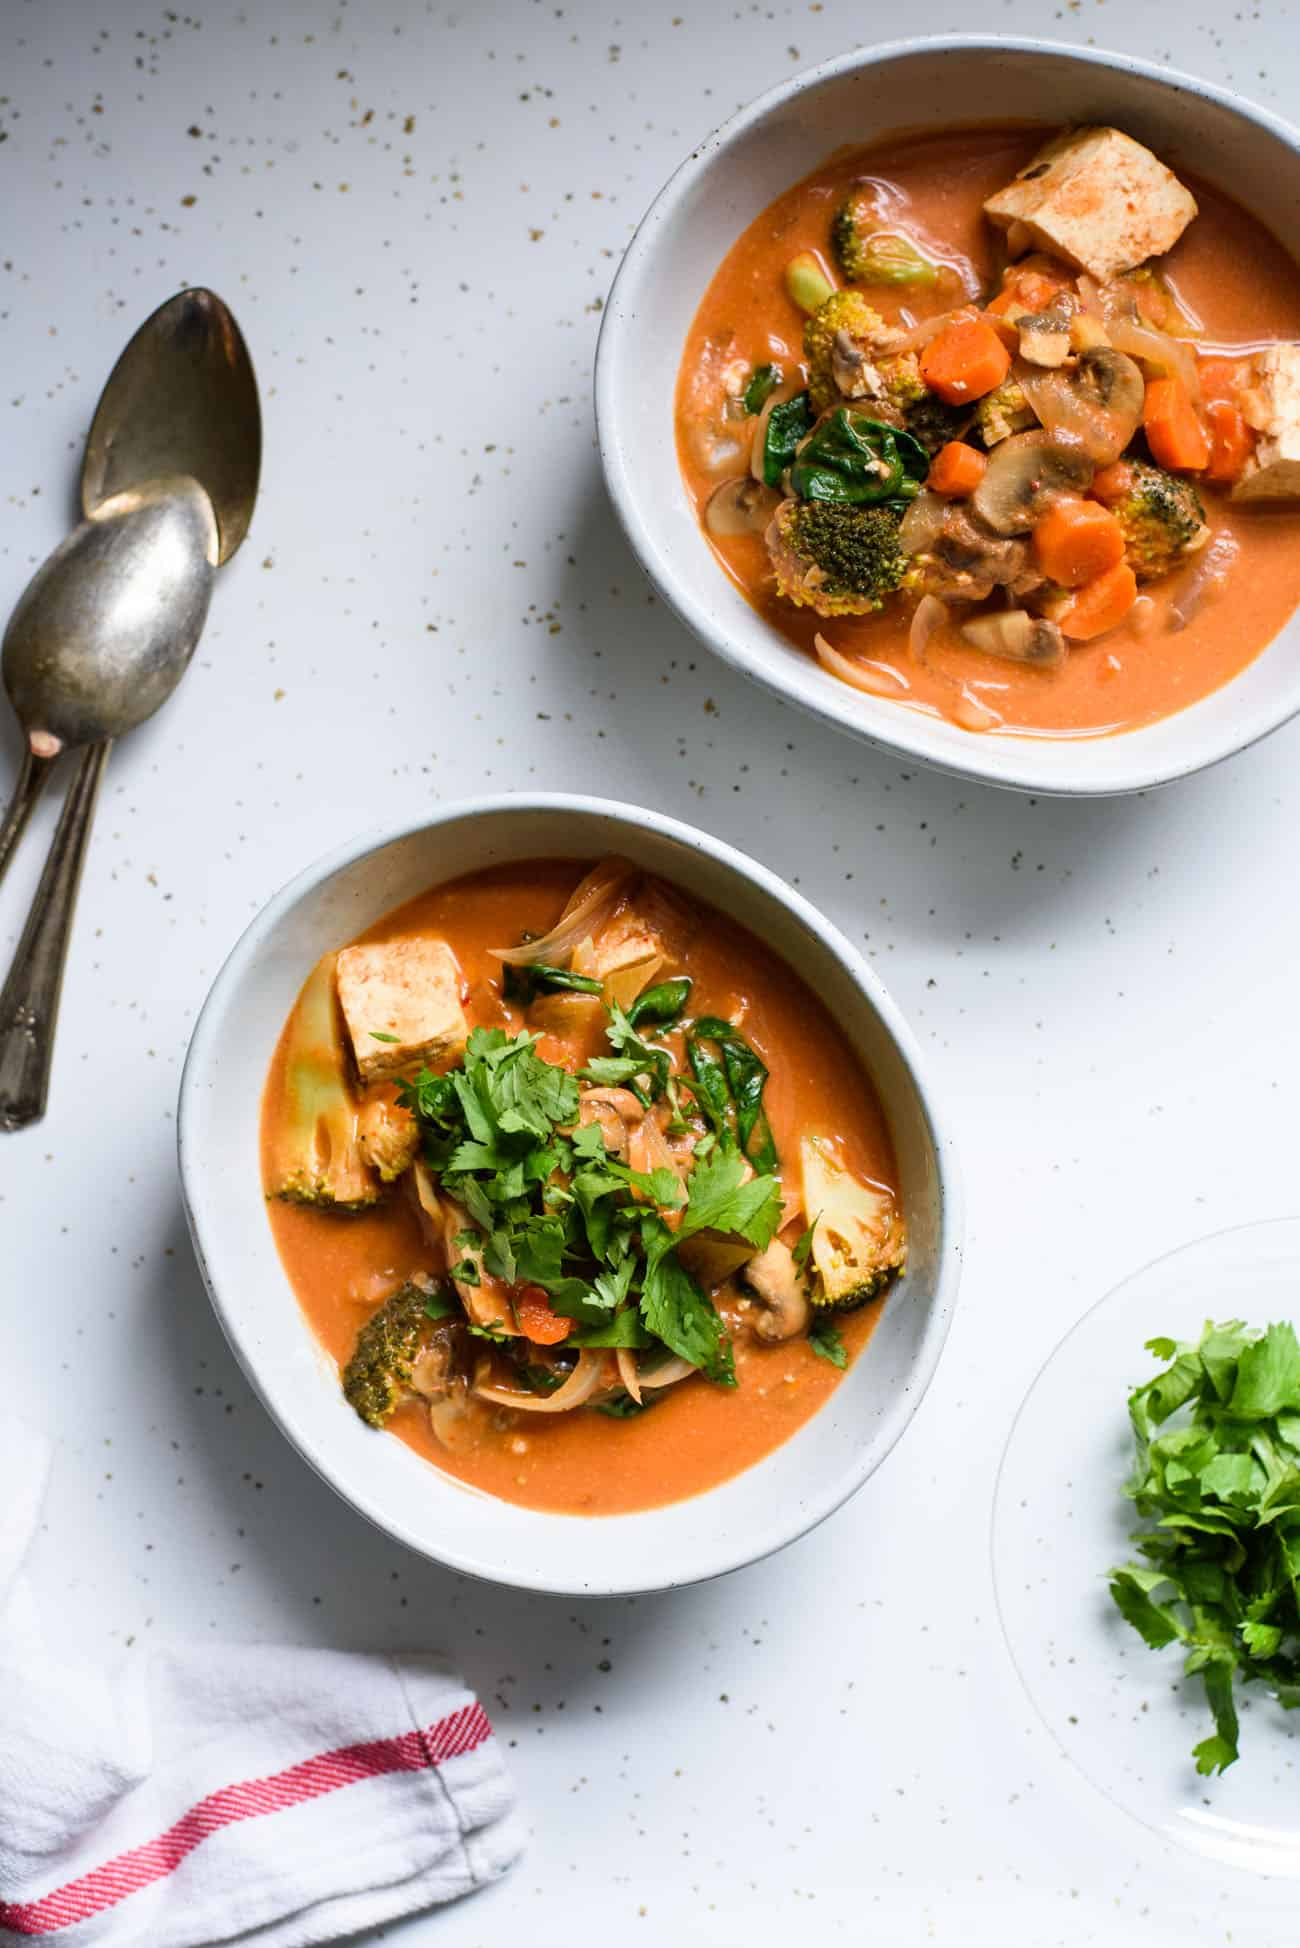 Two bowls of vegan tomato coconut curry with vegetables and tofu on a kitchen counter